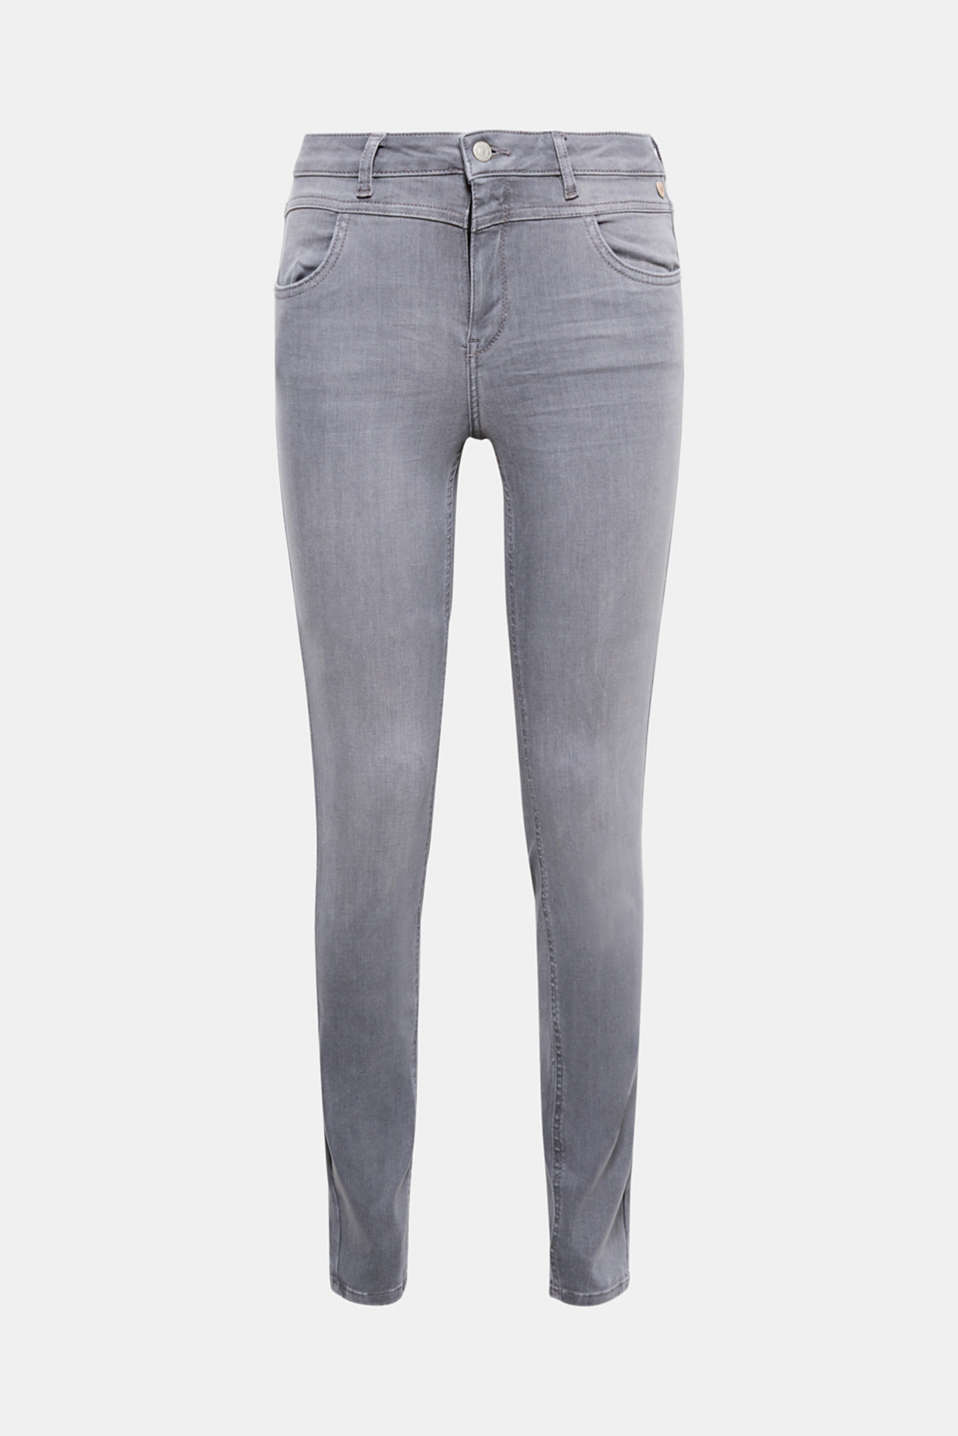 They create a sensational silhouette: High-waisted jeans made of lifting stretch denim with a clean garment wash.